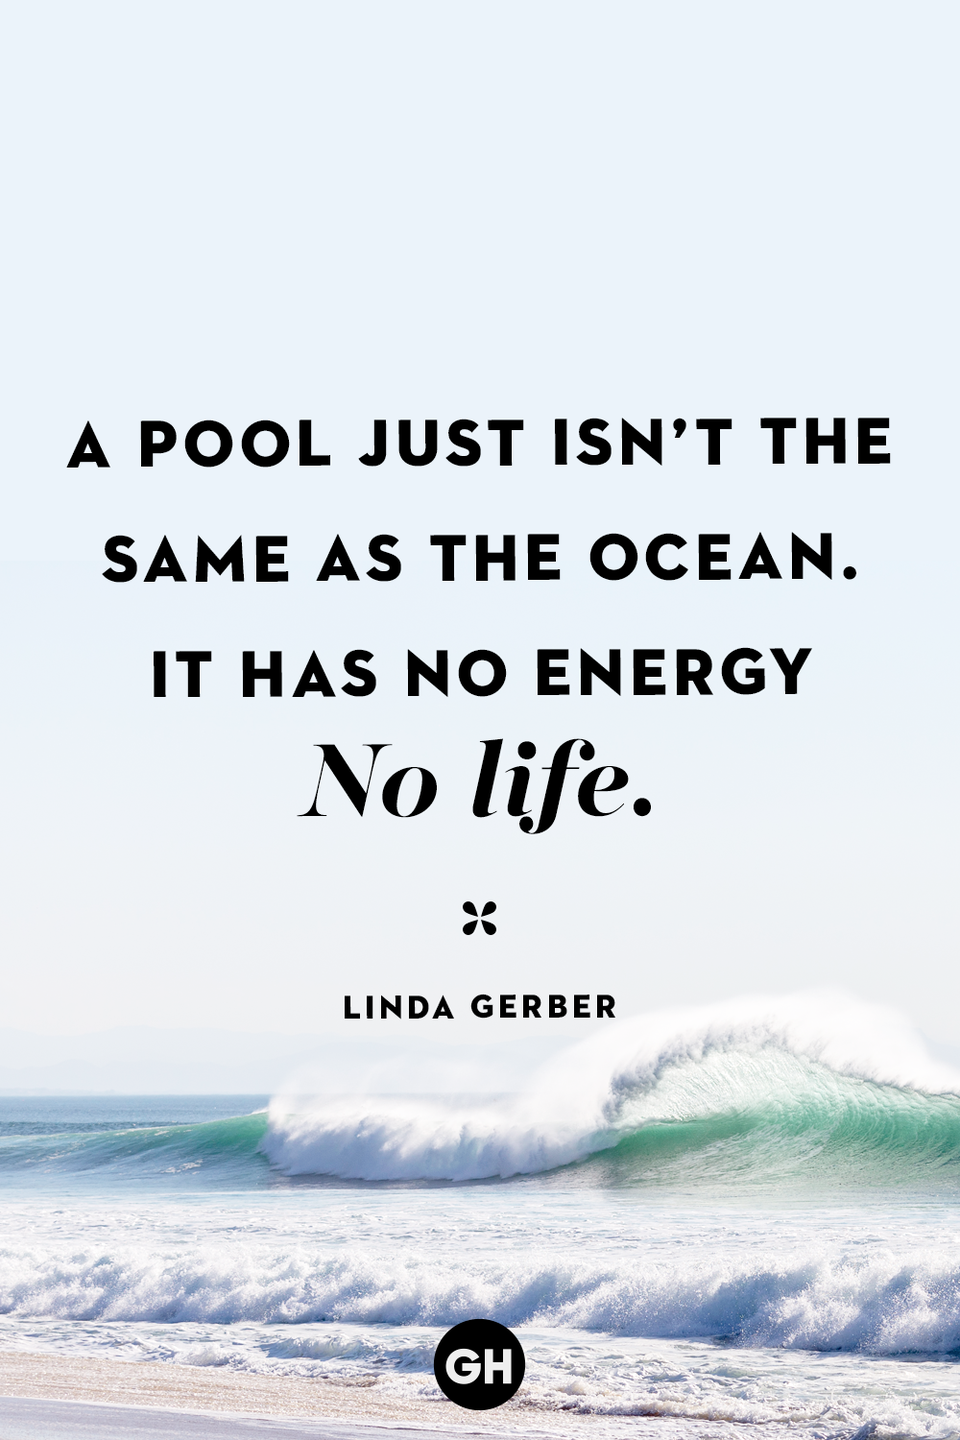 <p>A pool just isn't the same as the ocean. It has no energy. No life.</p>